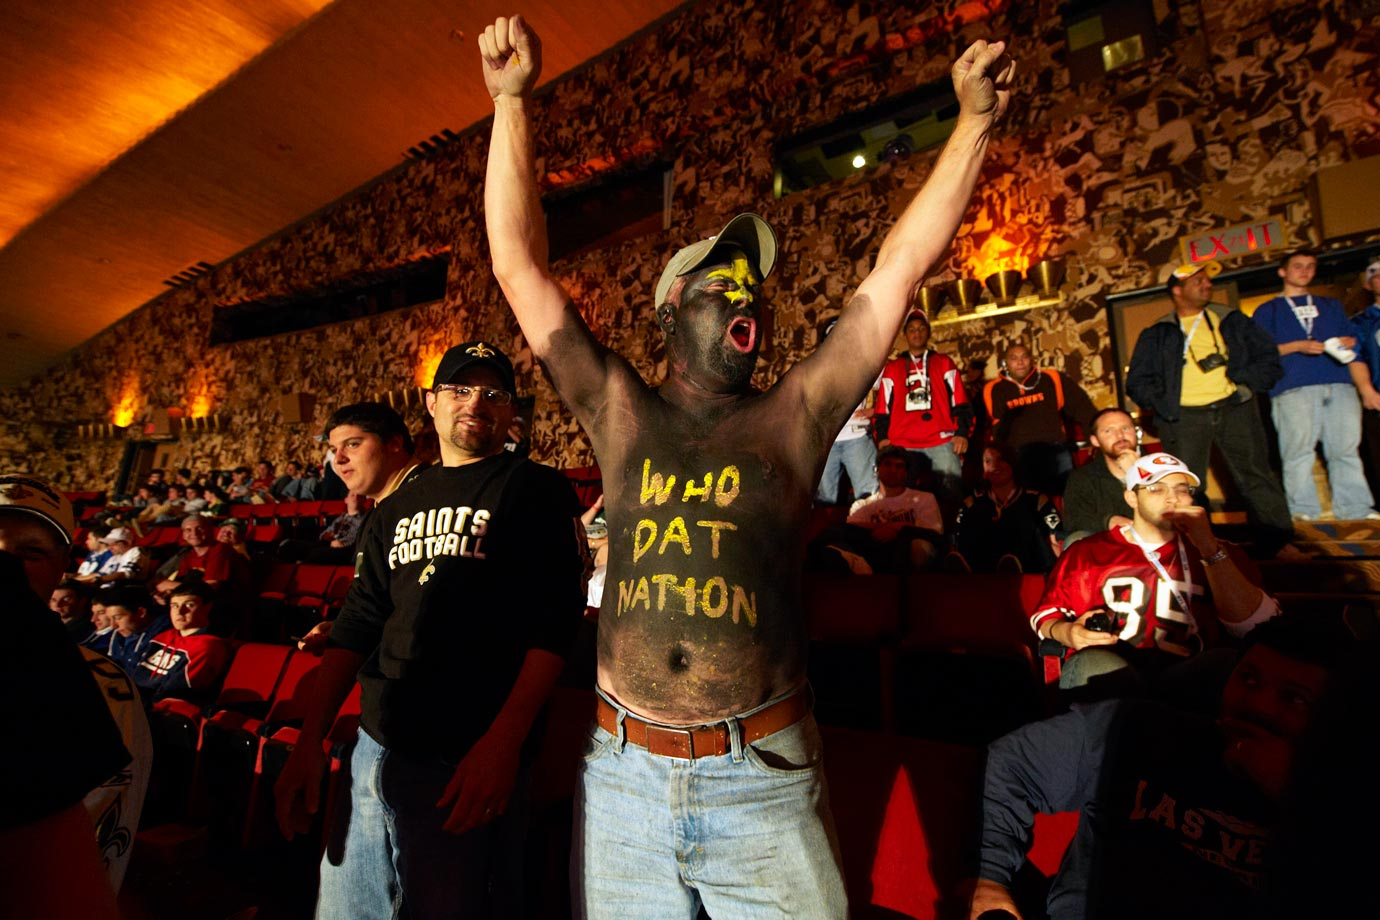 New Orleans Saints fan in 2010.